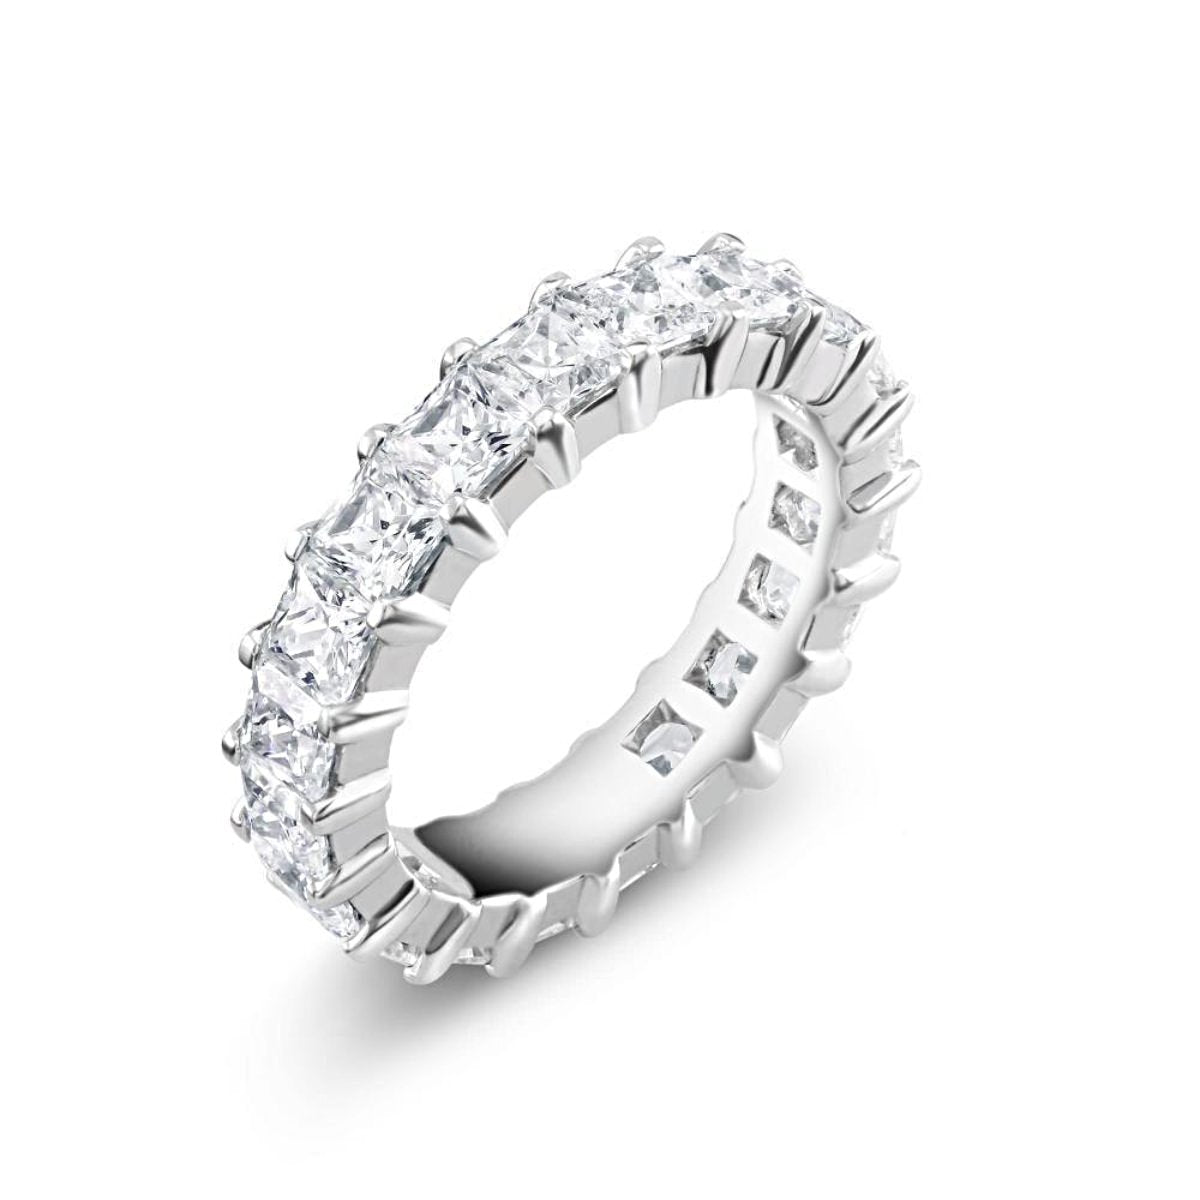 rings cttw round diamond gold bridal baguette h princess products cut i ring wedding white band